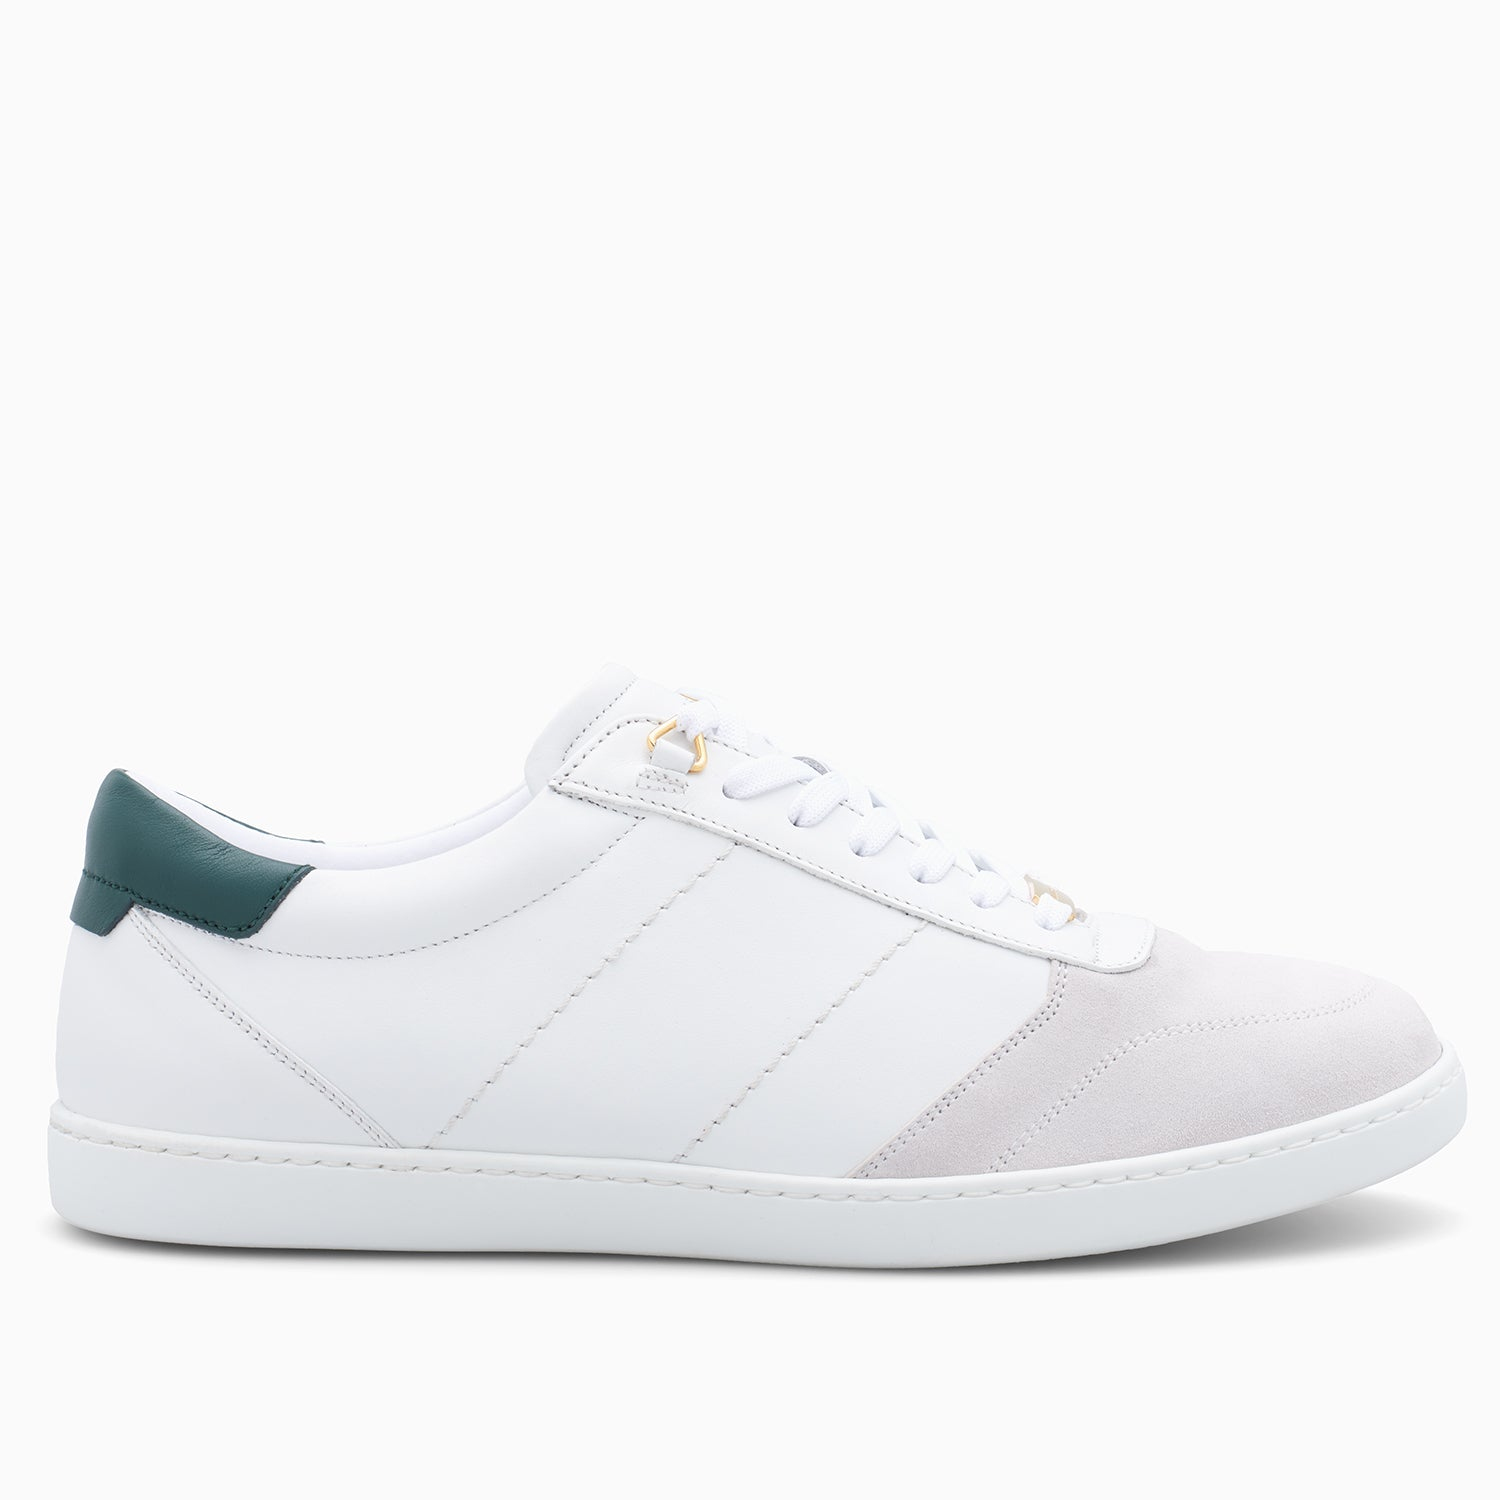 Green and white low top Buscemi sneaker